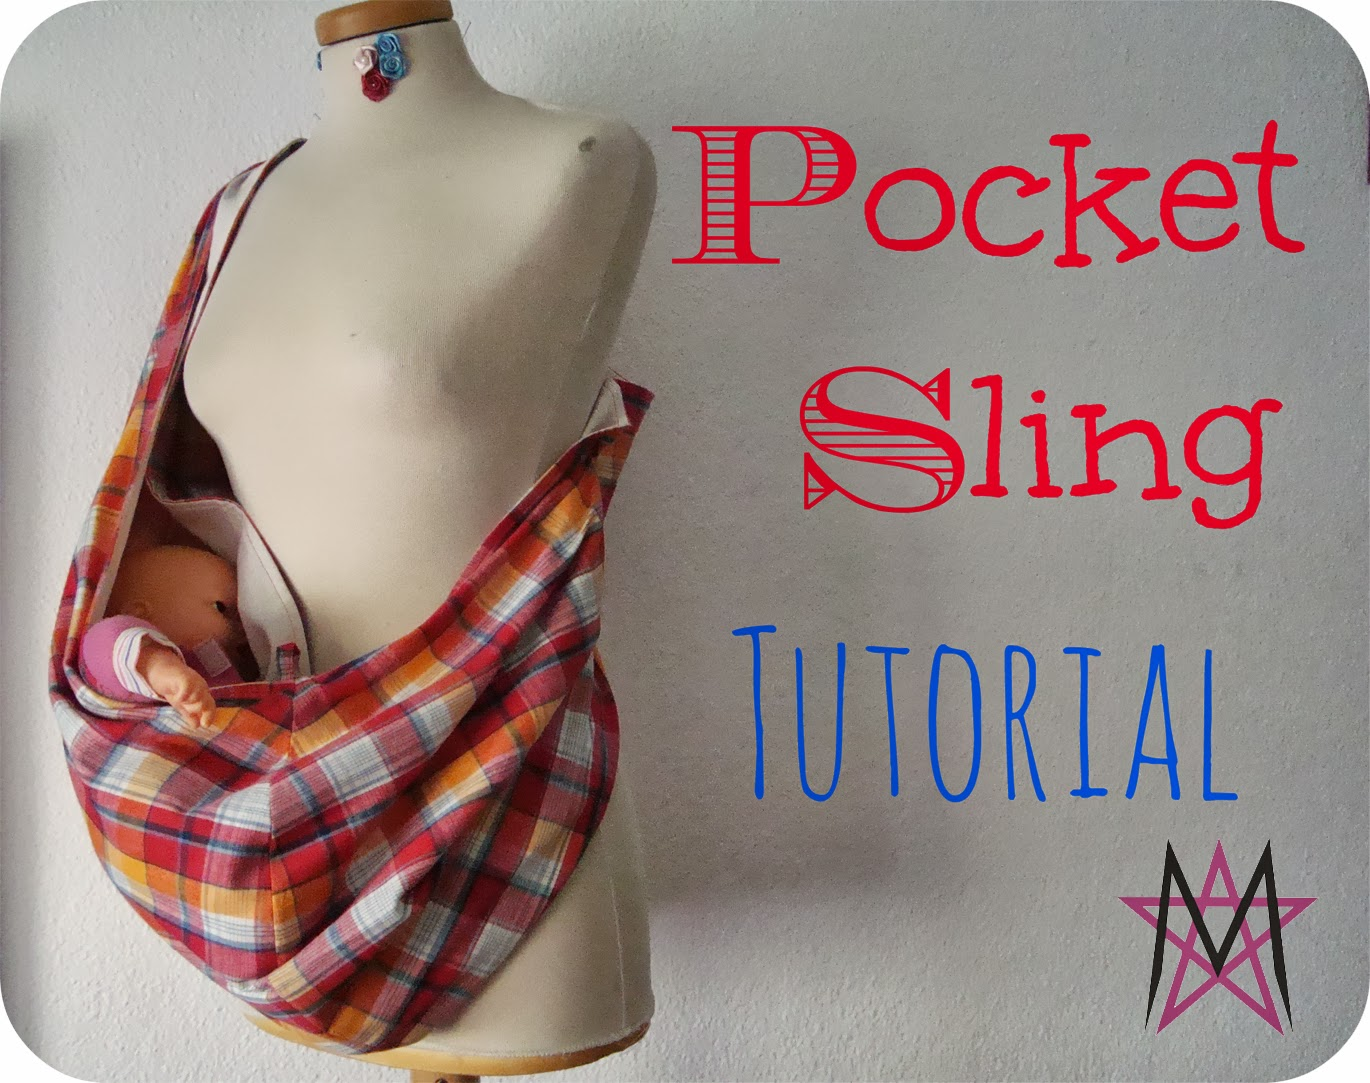 House Of Estrela Pocket Sling Tutorial